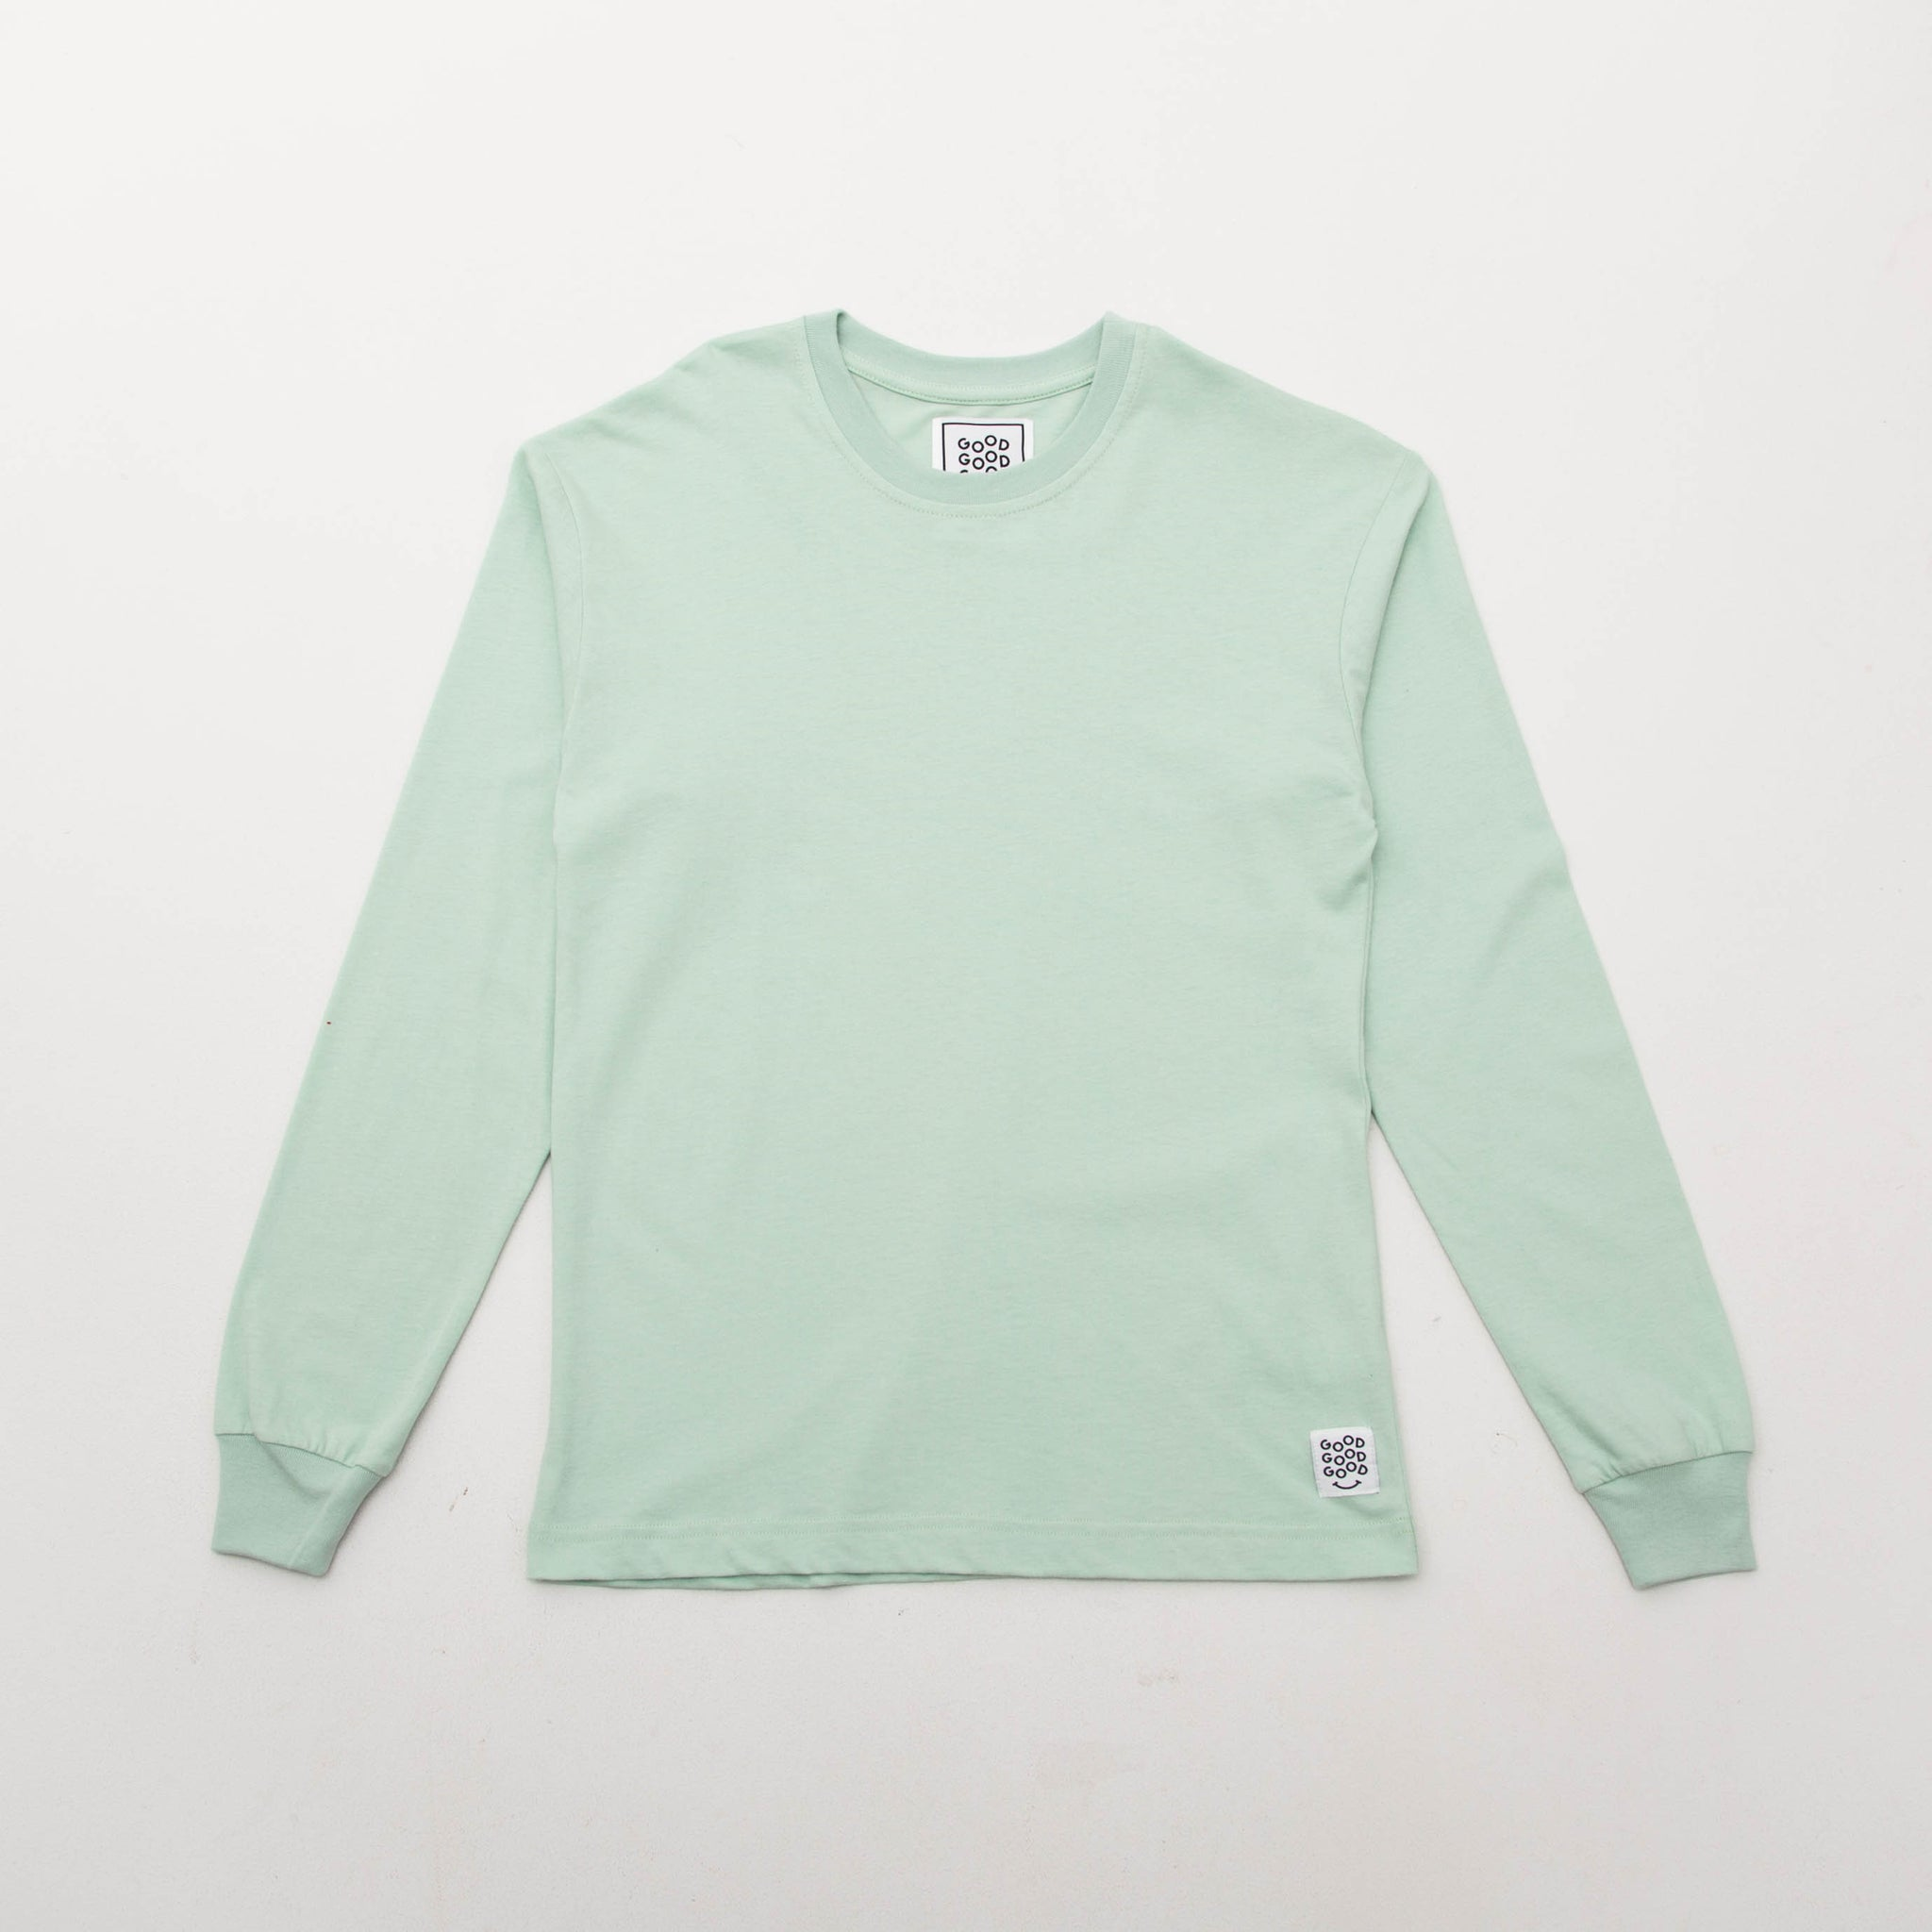 Good Good Good Basic T Shirt (Long Sleeve) - Mint - Front View | AStore